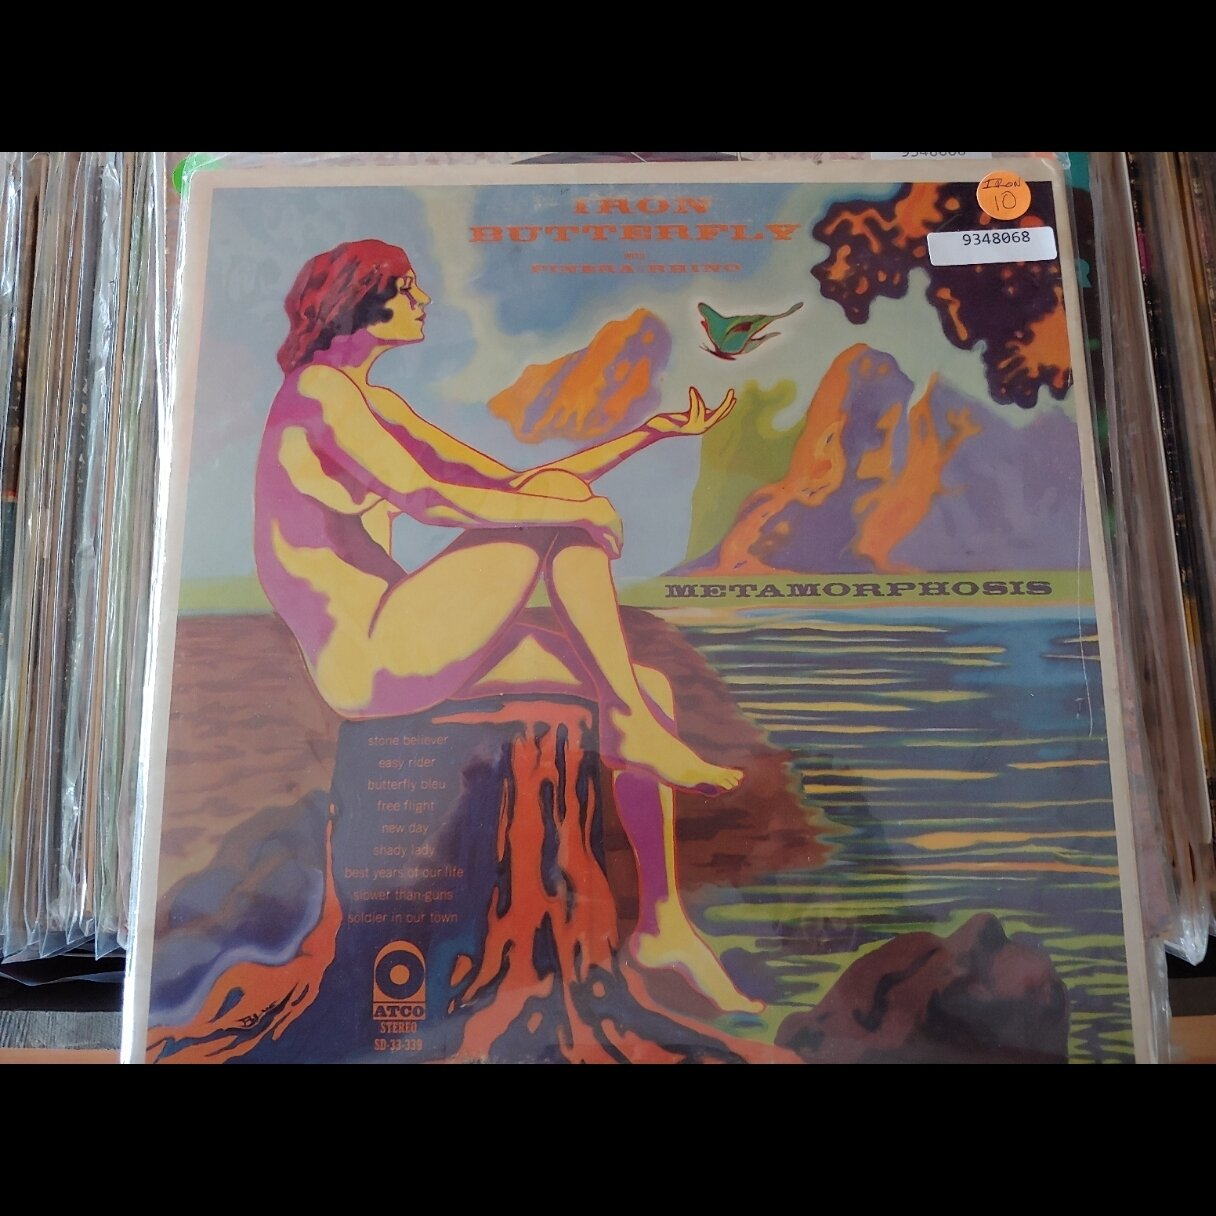 Iron Butterfly - Metamorphasis